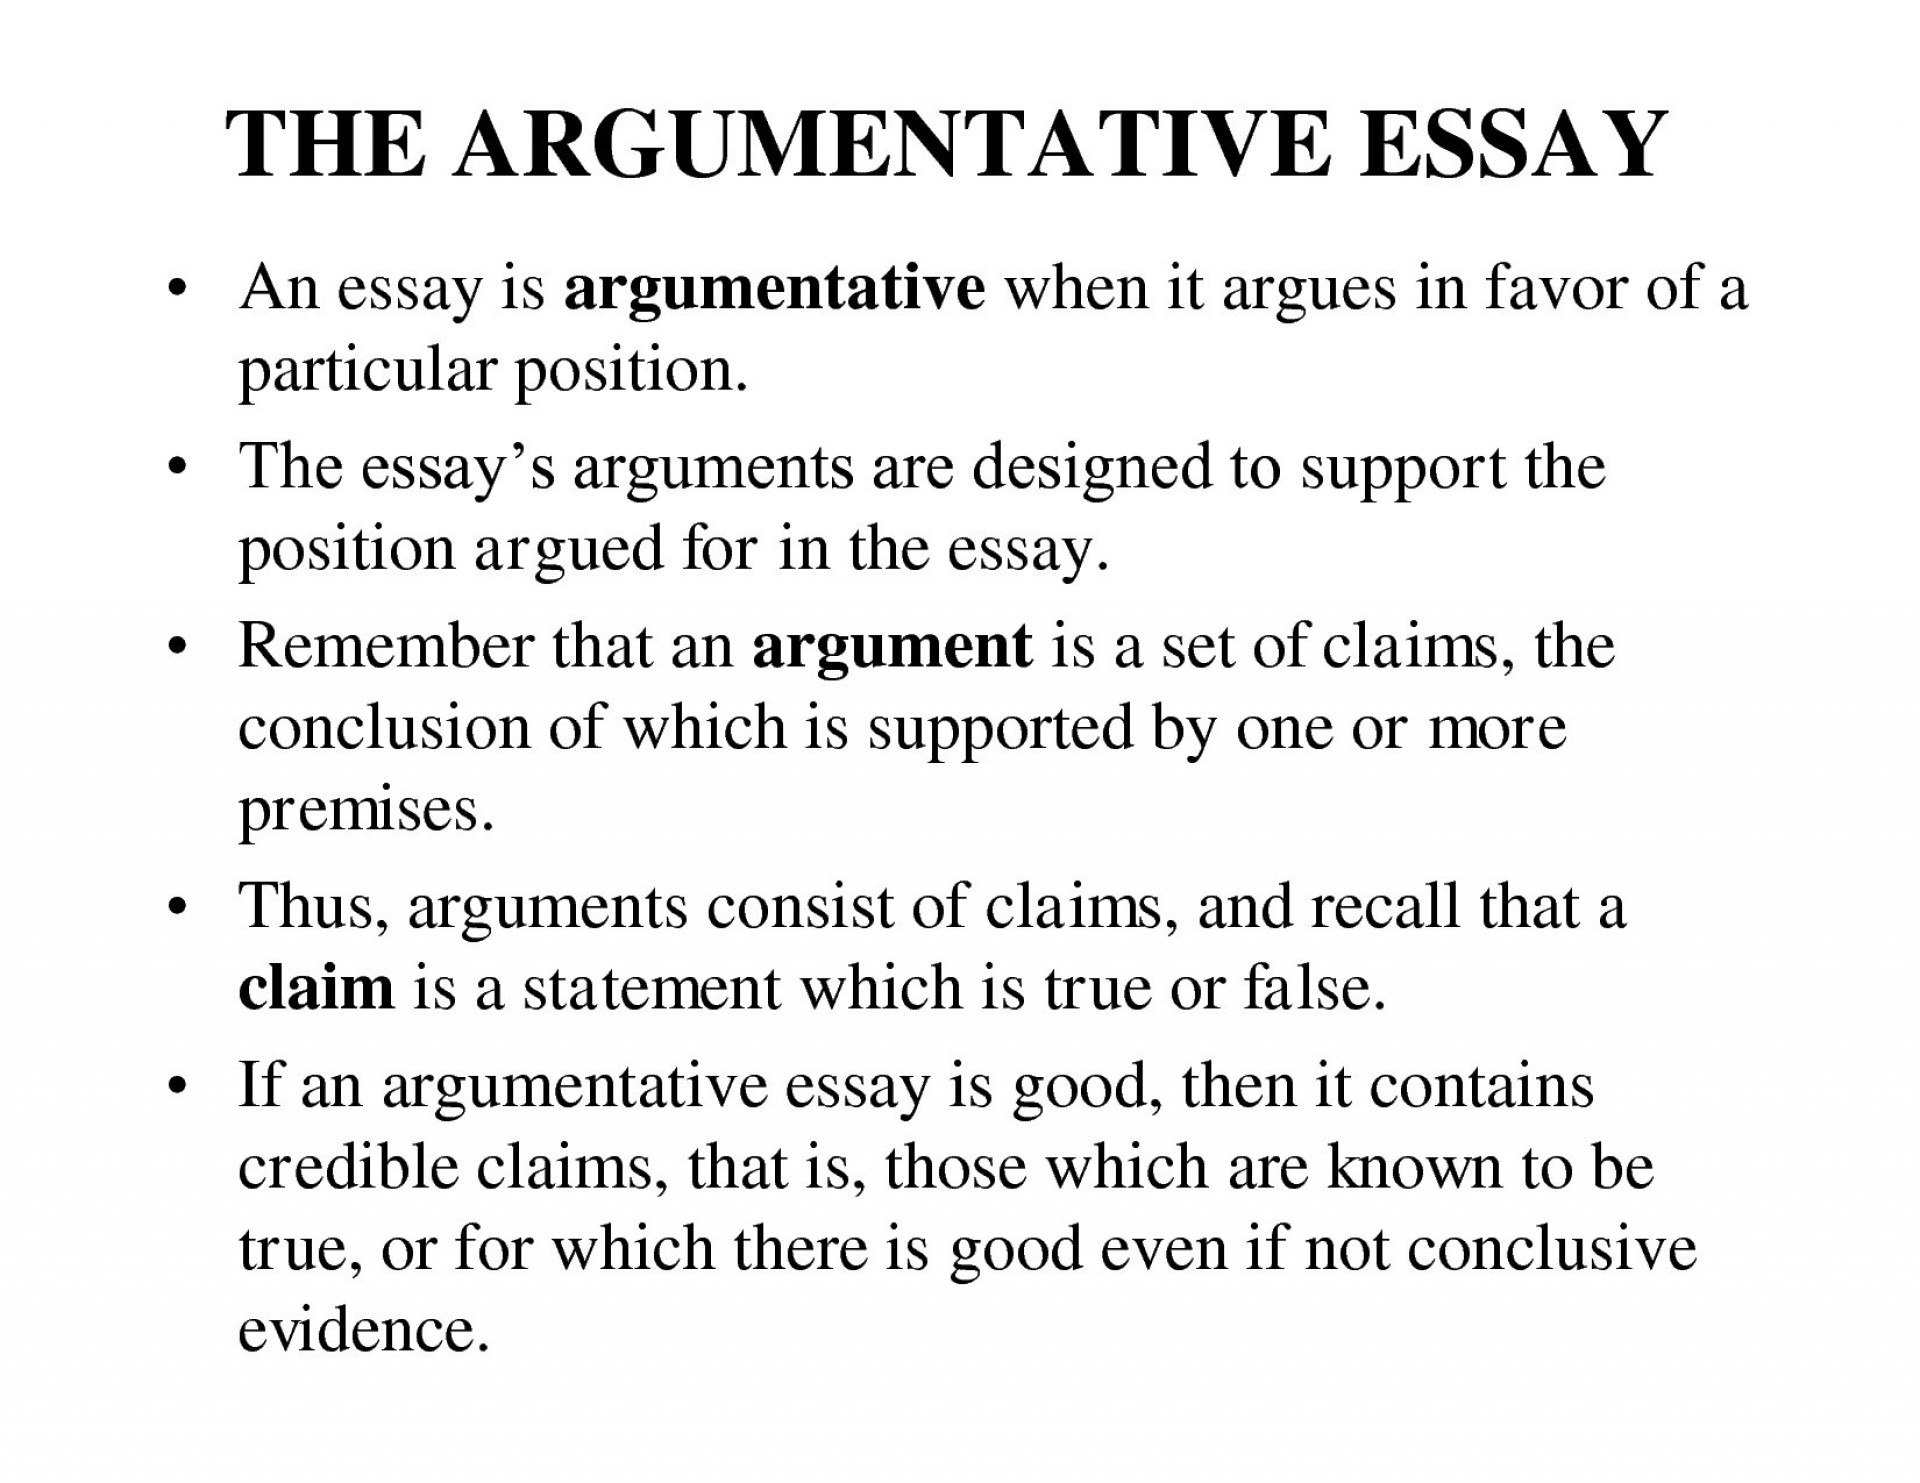 003 Argumentativessay Conclusionxamplexamples And Forms What Is An Definition Outline Printables Corner With Rega Powerpoint Ppt Its Parts Topics Pdf Brainly Define Fantastic Argumentative Essay Claim 1920